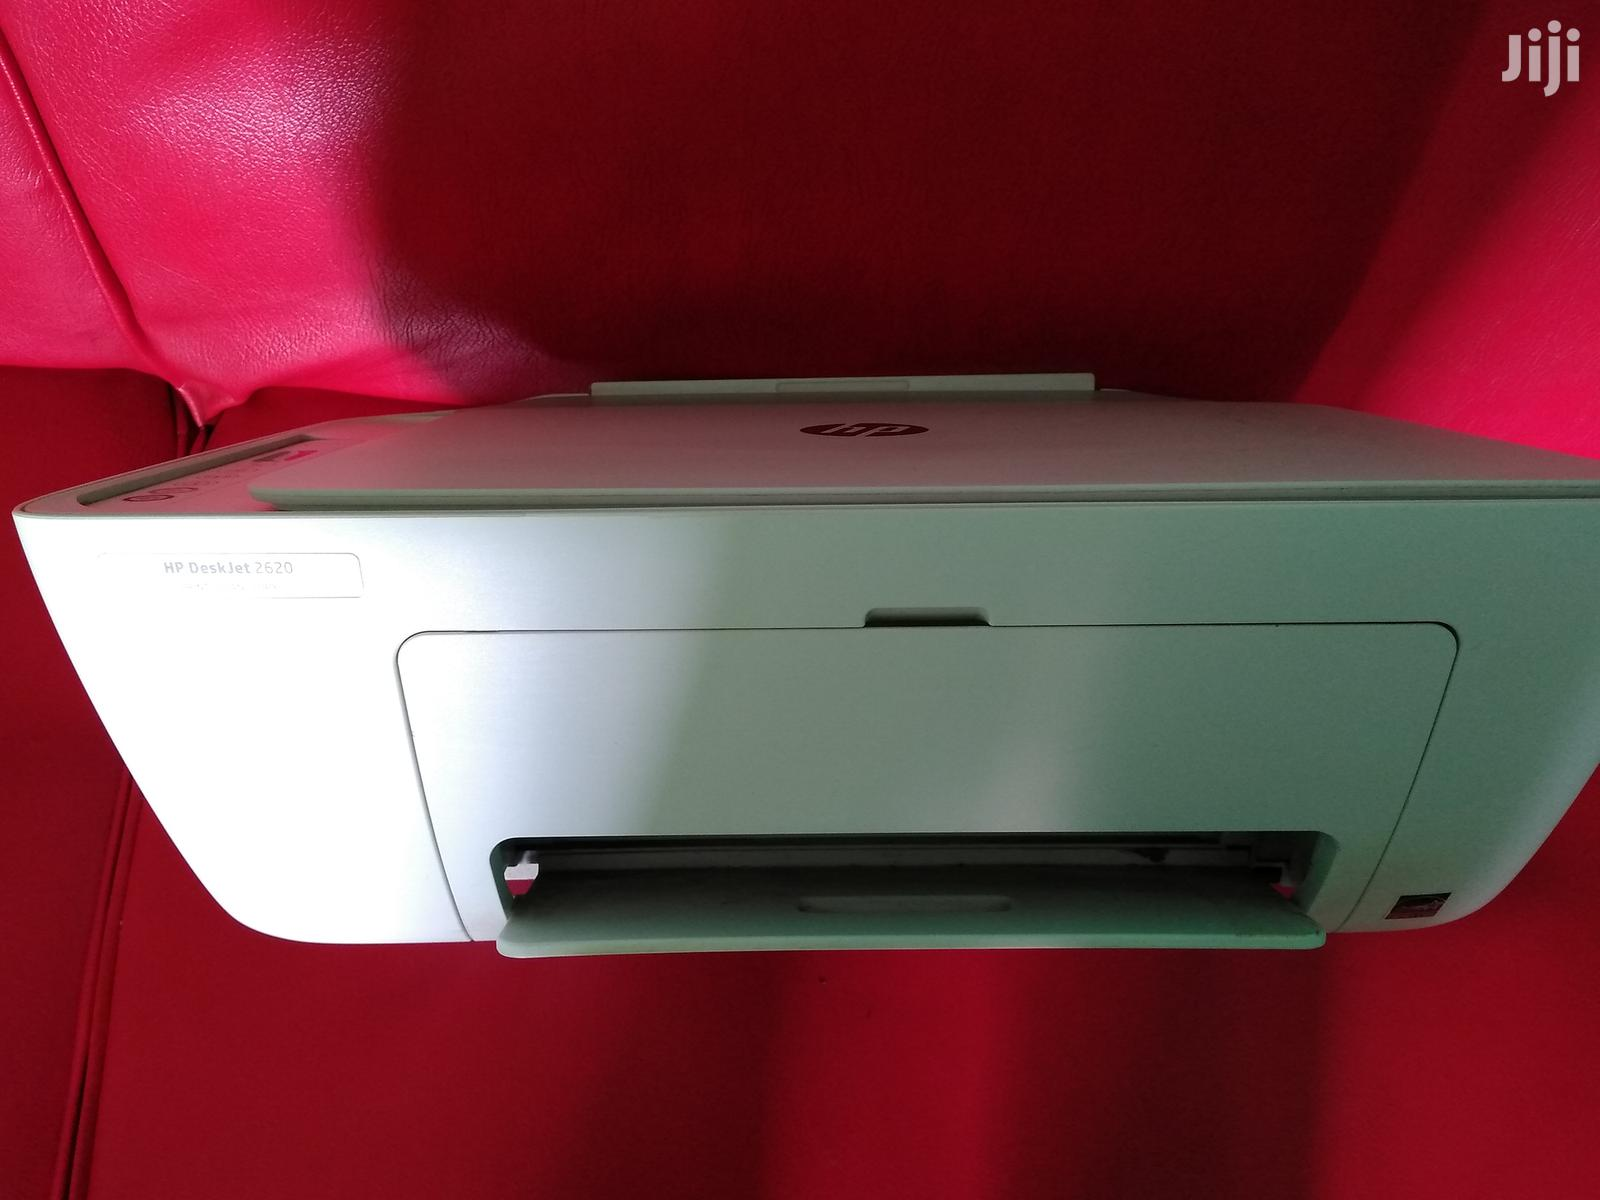 Archive: HP Deskjet 2620 All In One Wireless Deskjet Printer